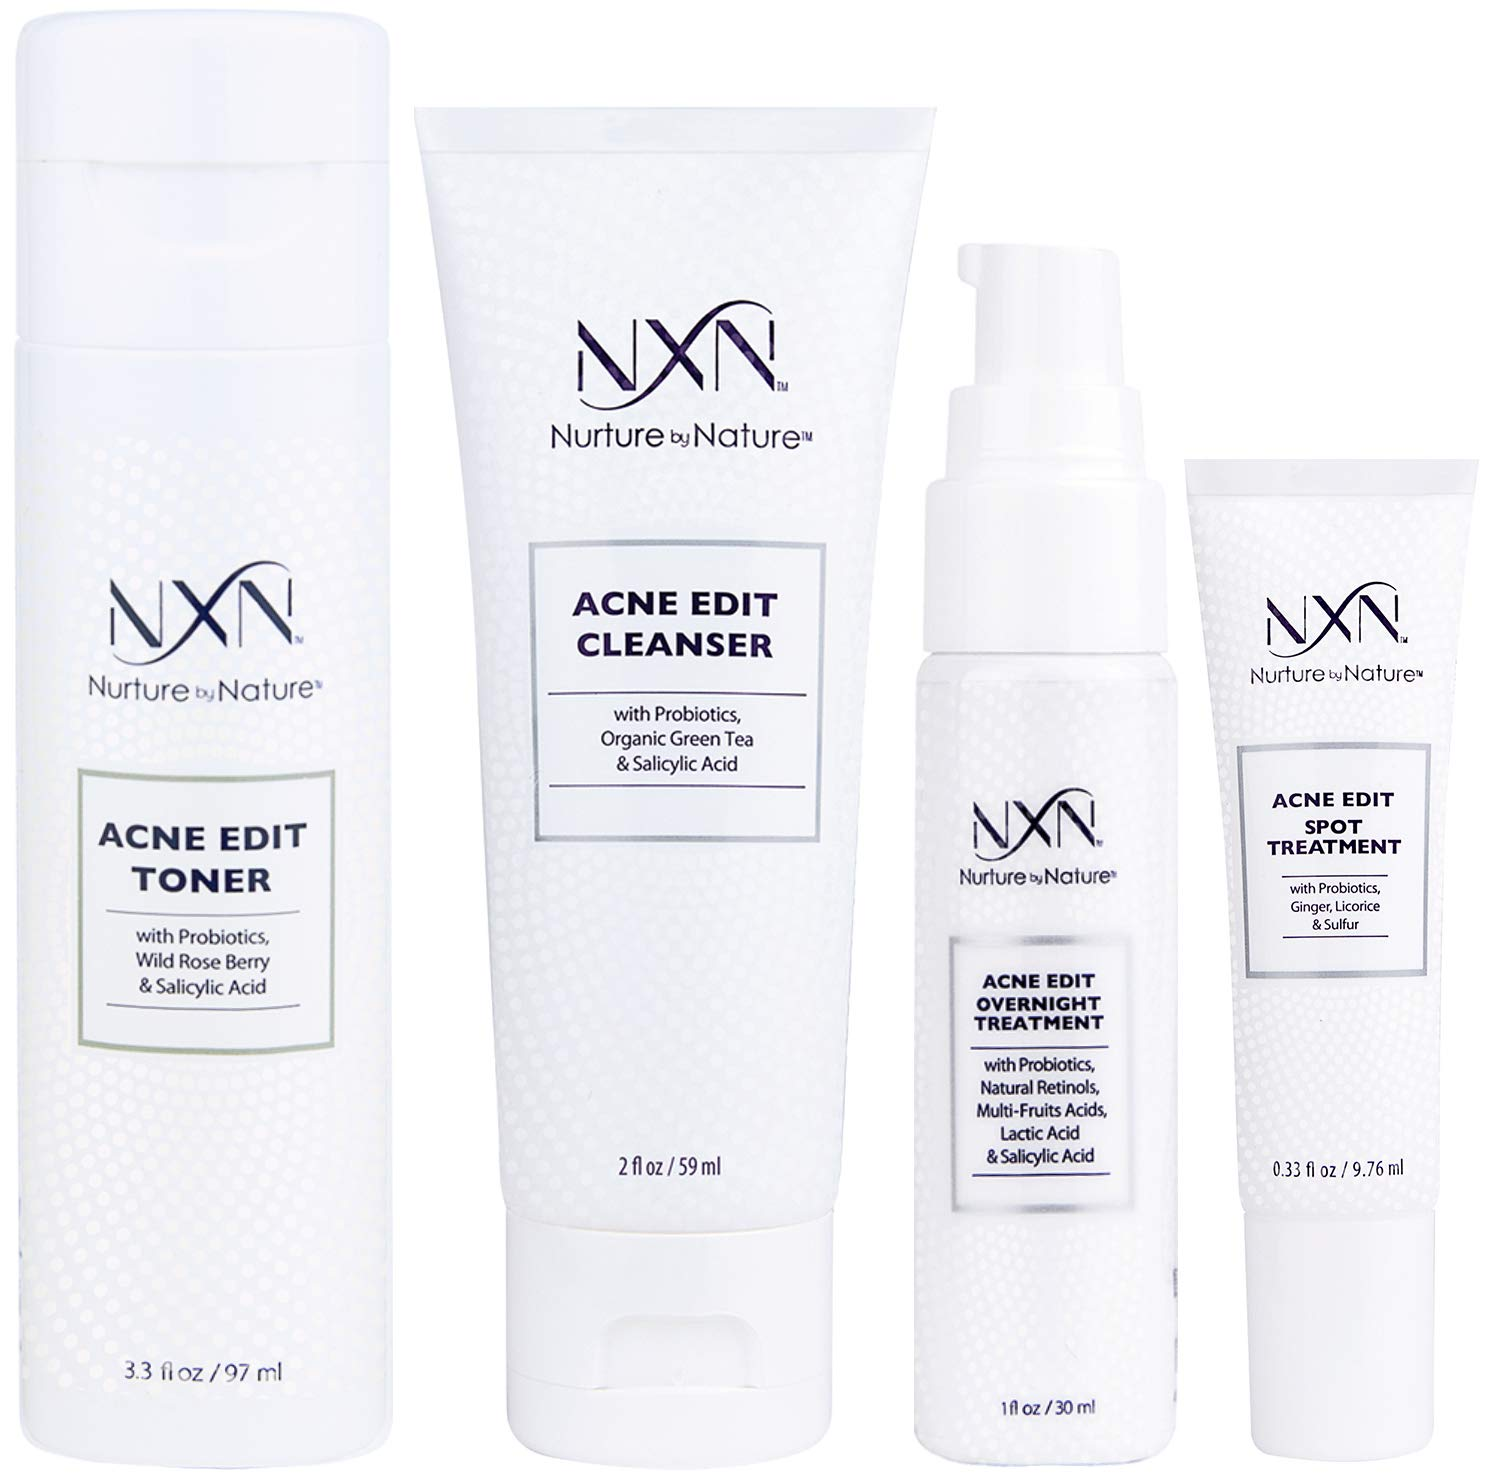 NxN Acne Treatment 4-Step Clear Skin System with Probiotics, Natural Multi-Fruit Extracts and Salicylic Acid for Acne Blemishes and Breakouts For all Skin Types (Including Sensitive Skin) by Nurture by Nature (Image #1)